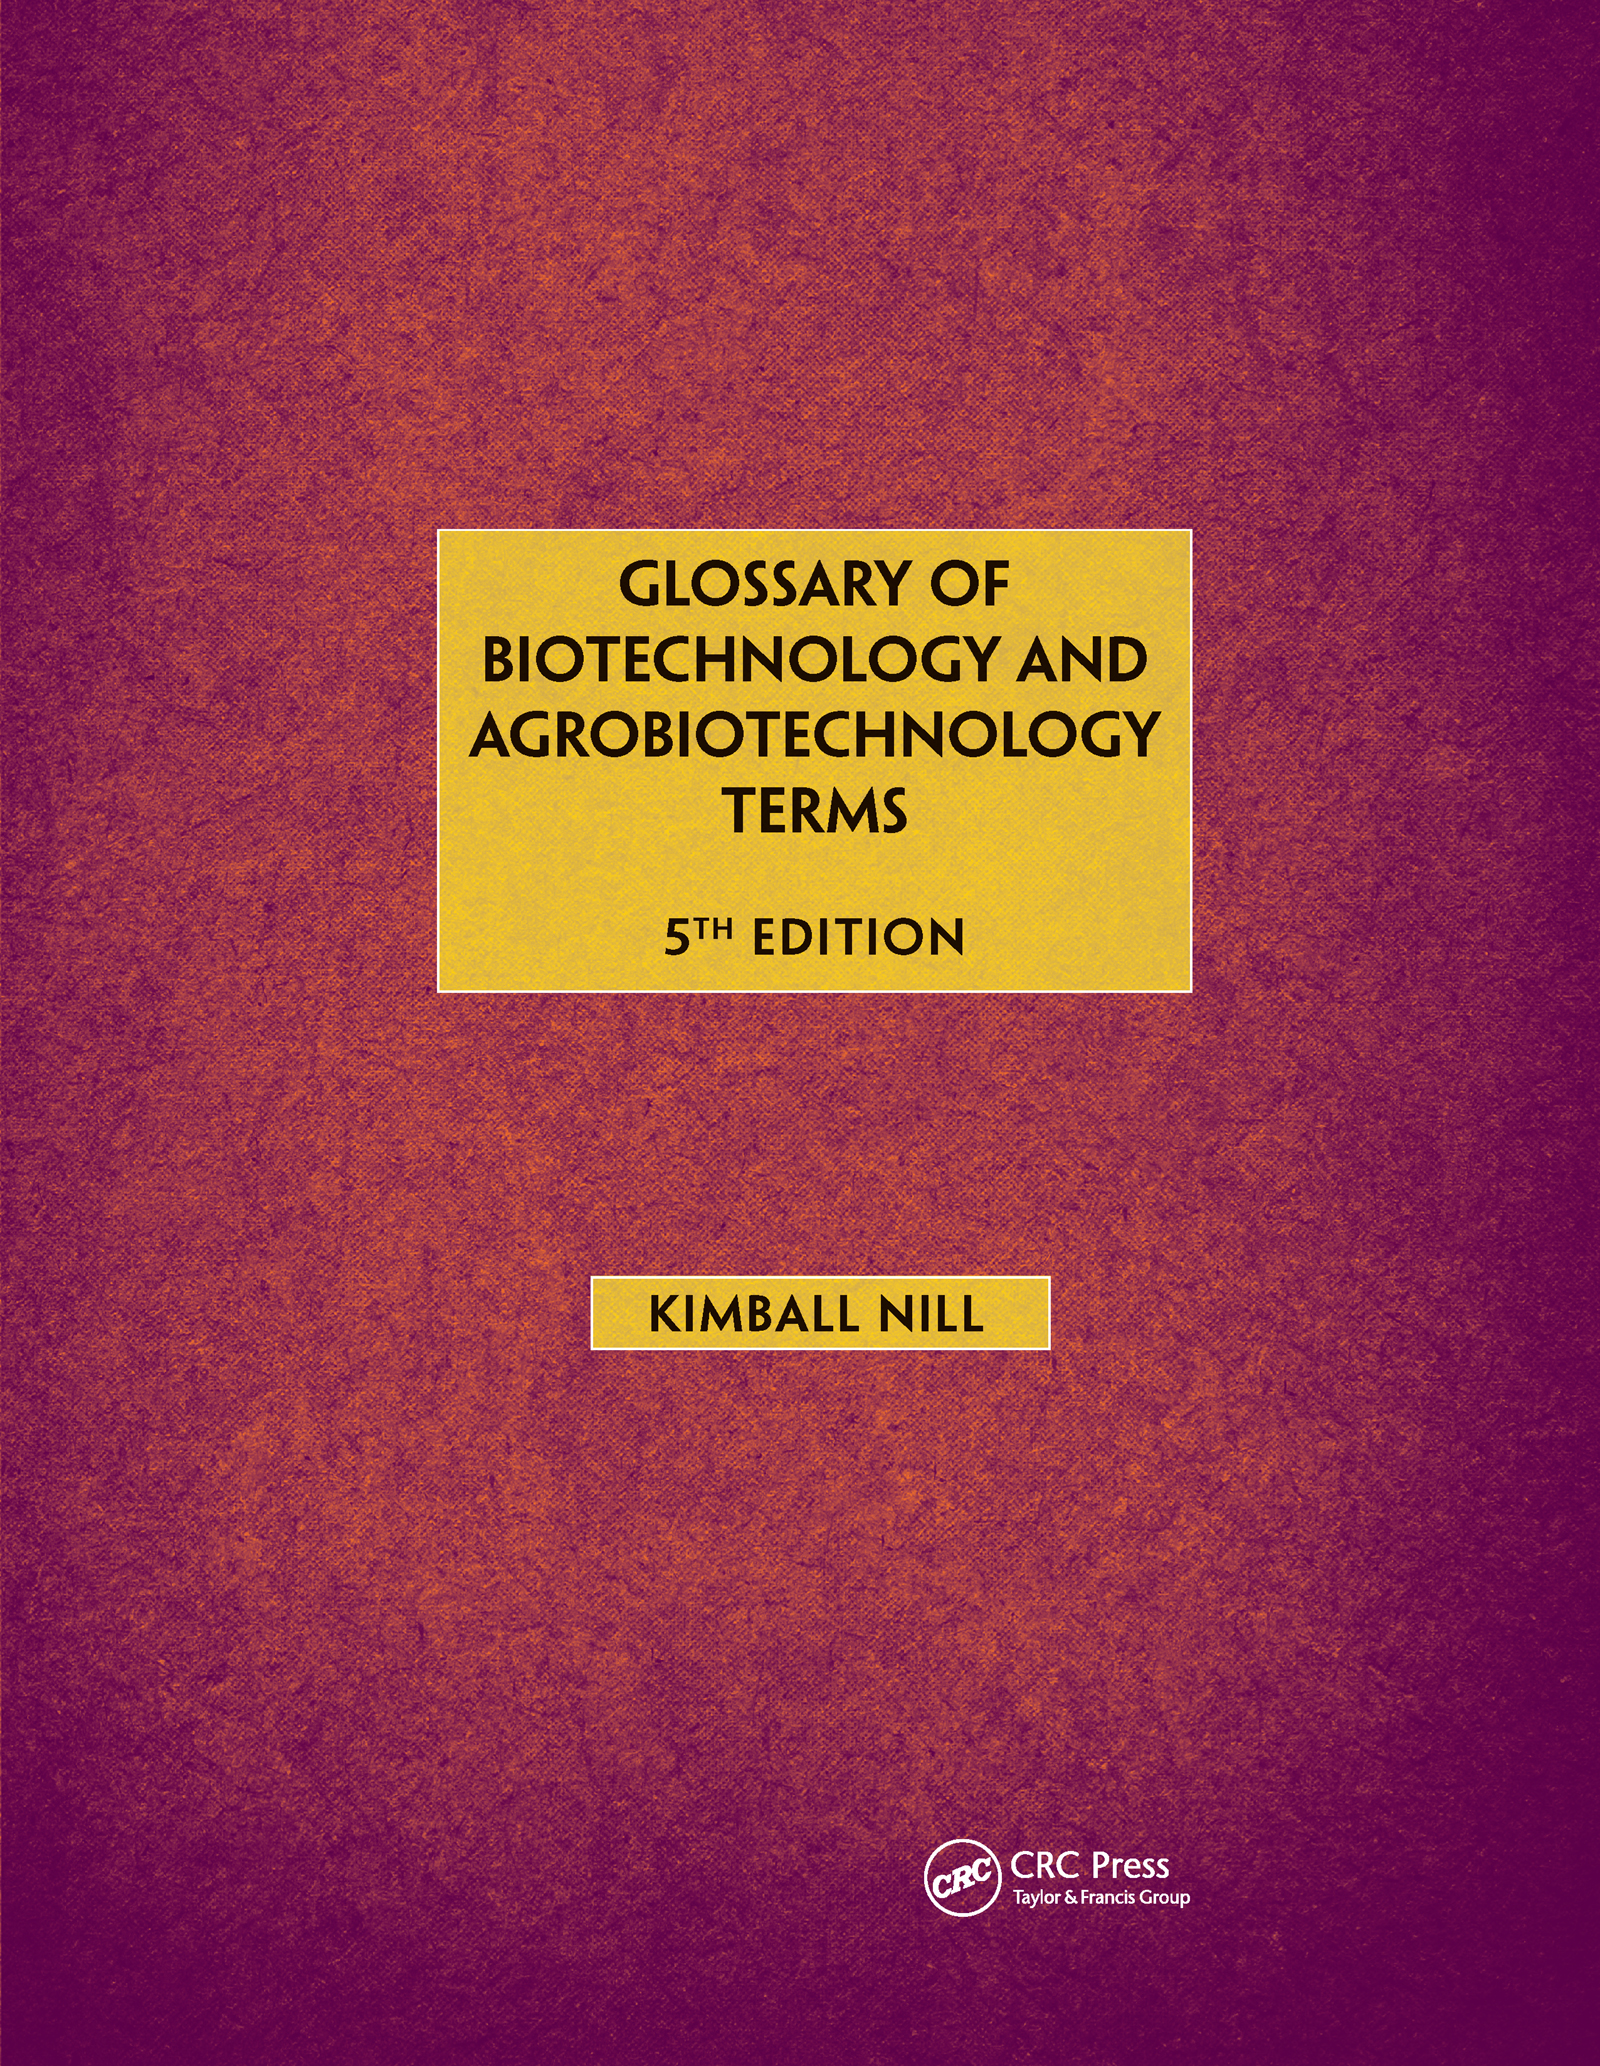 Glossary of Biotechnology & Agrobiotechnology Terms